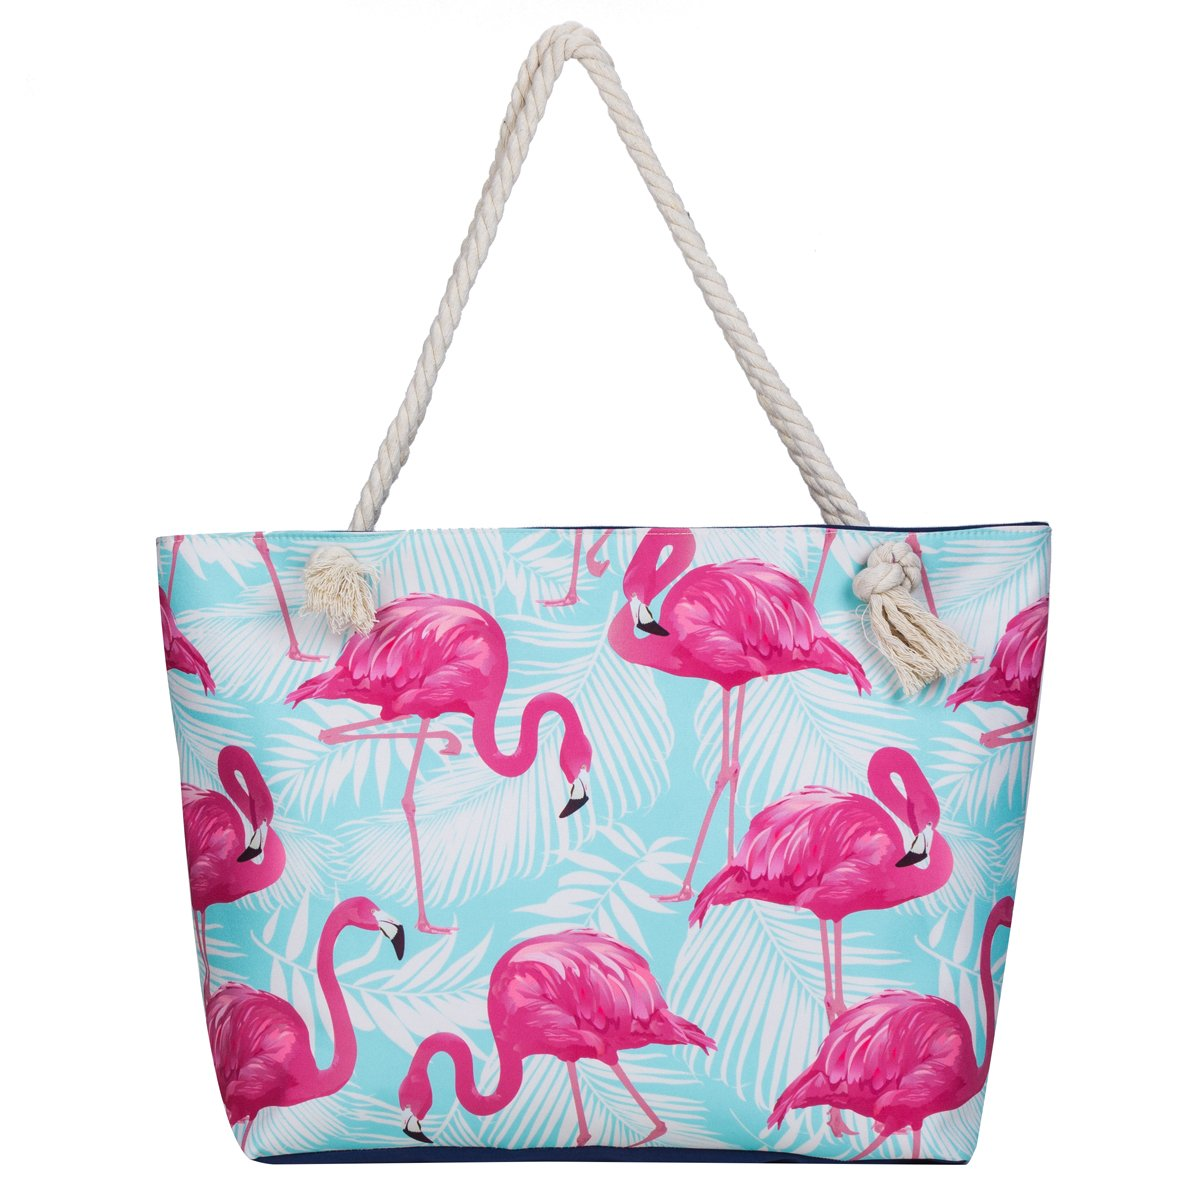 MISS FANTASY Beach Bag Large Waterproof Flamingo Pineapple Summer Tote with Waterproof case (Flamingo 1)